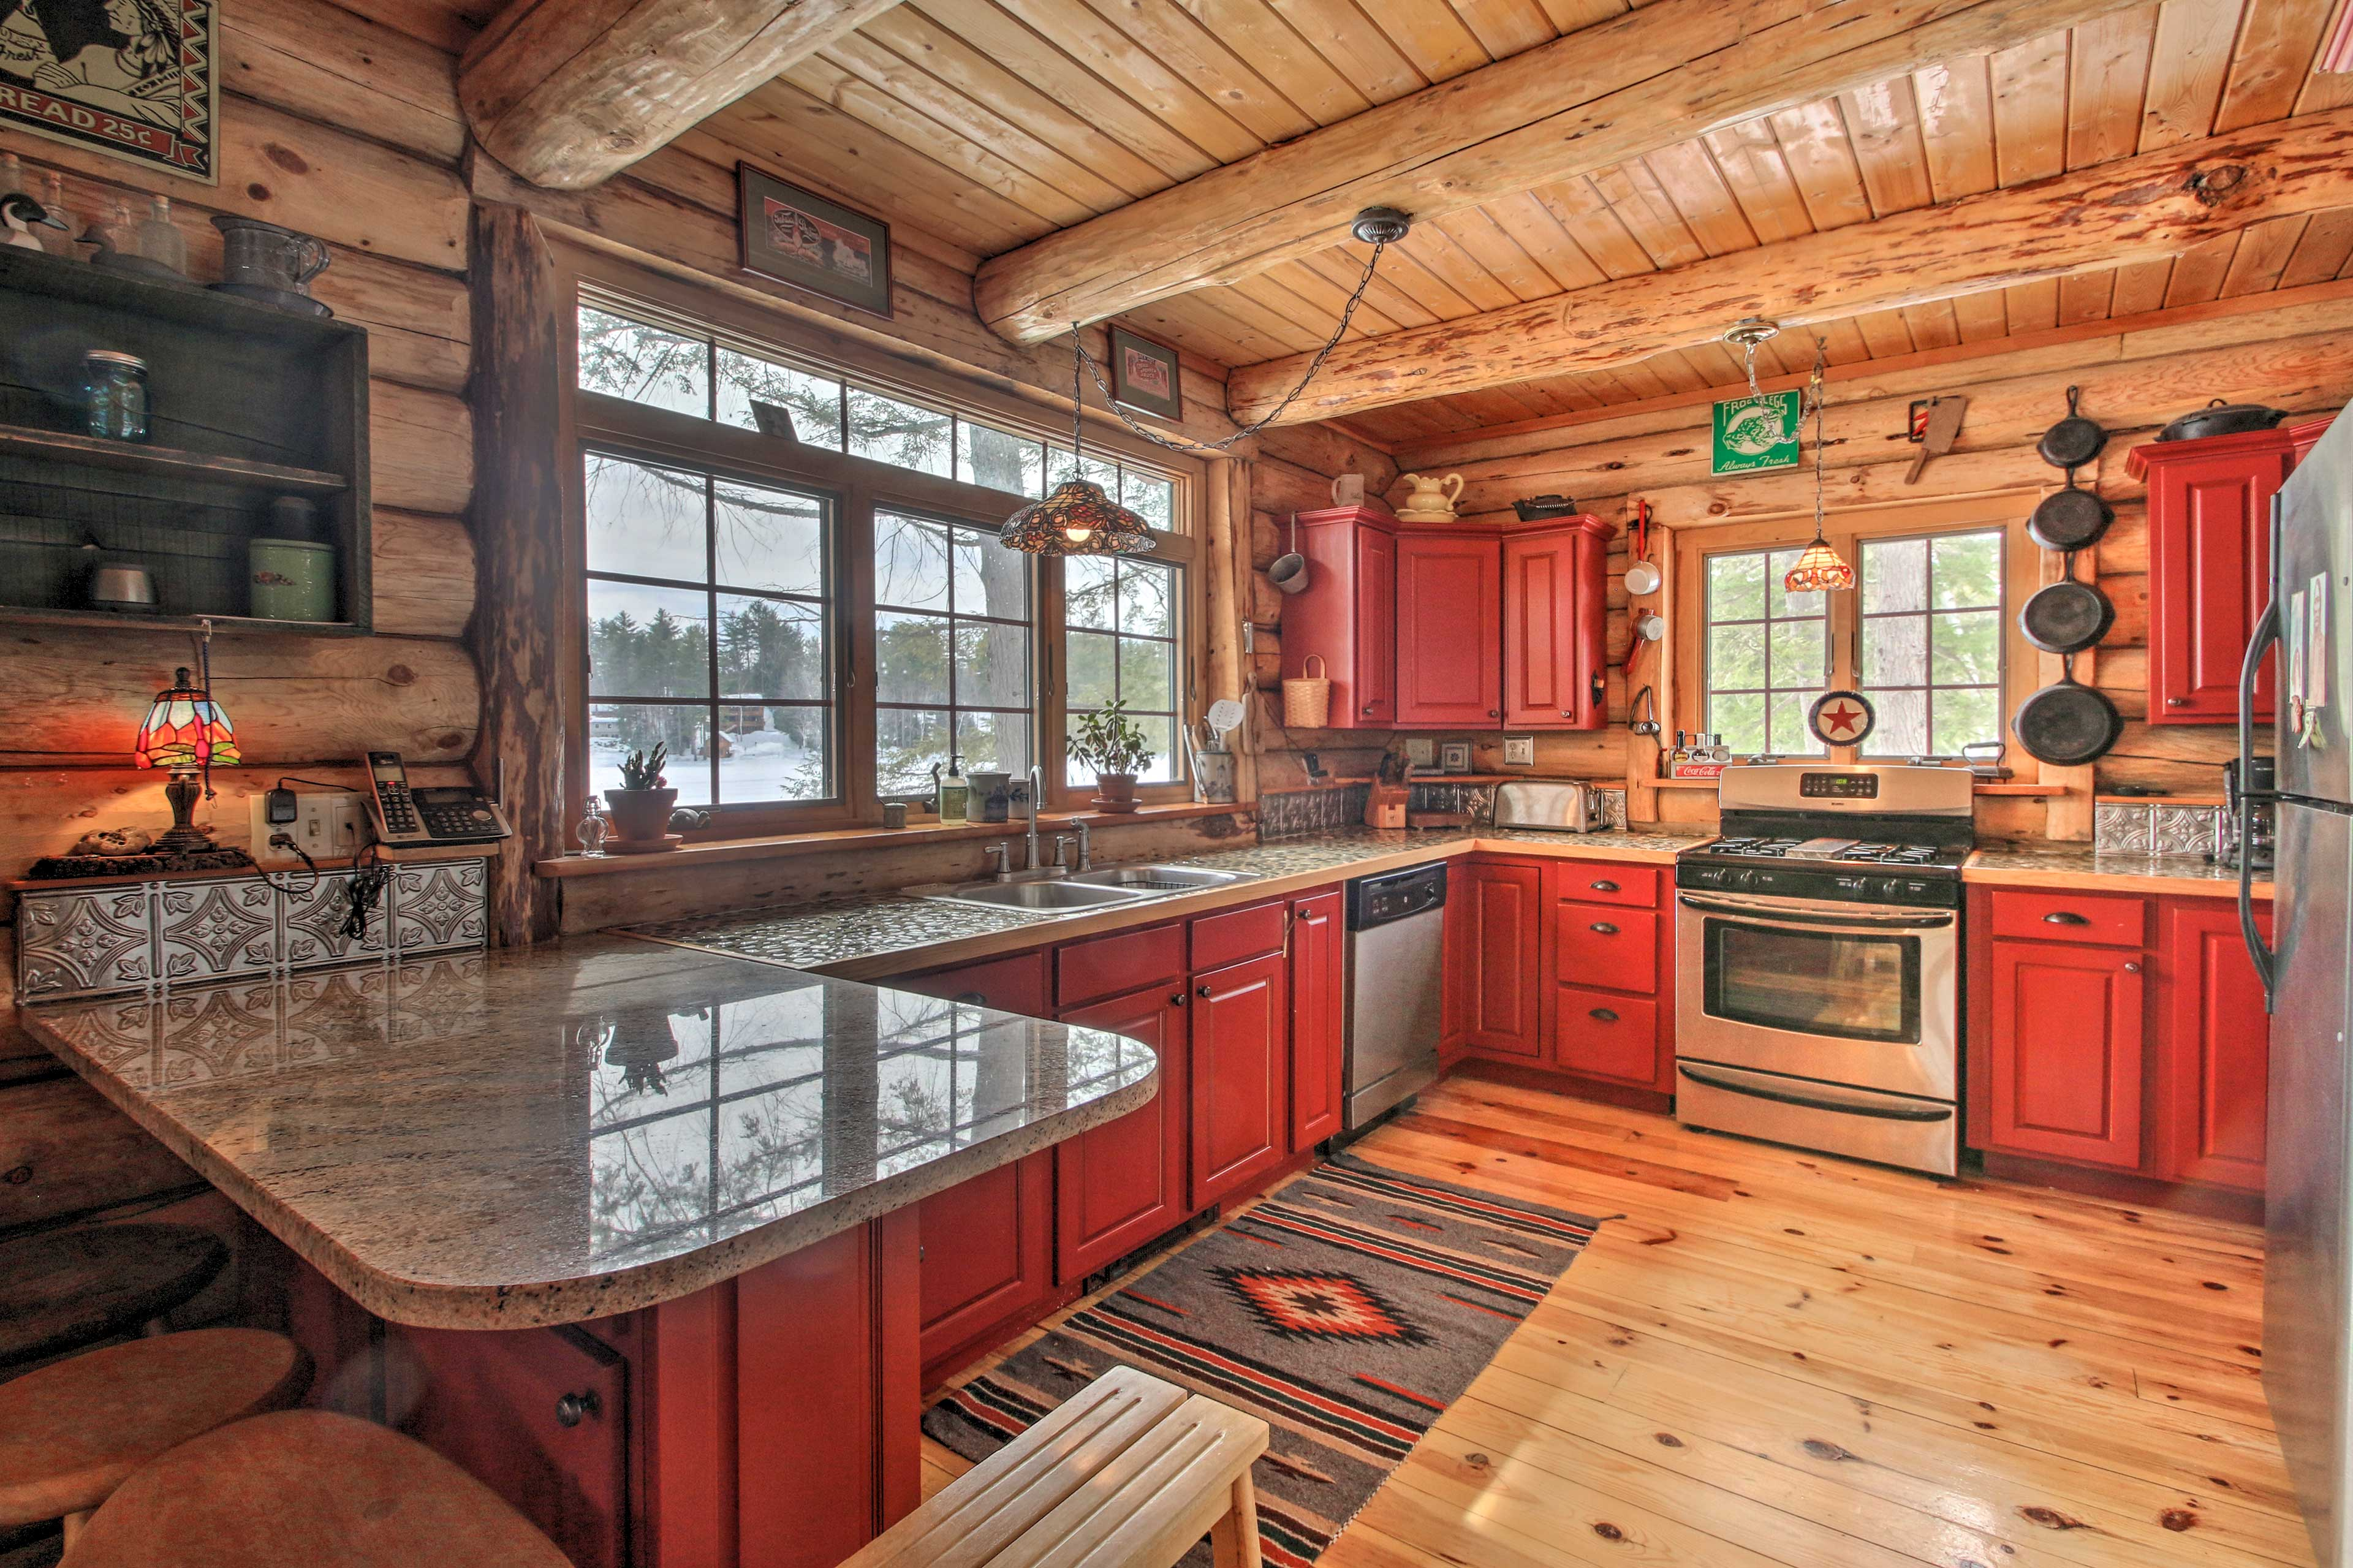 Inside, you'll find numerous amenities like this impressive kitchen!